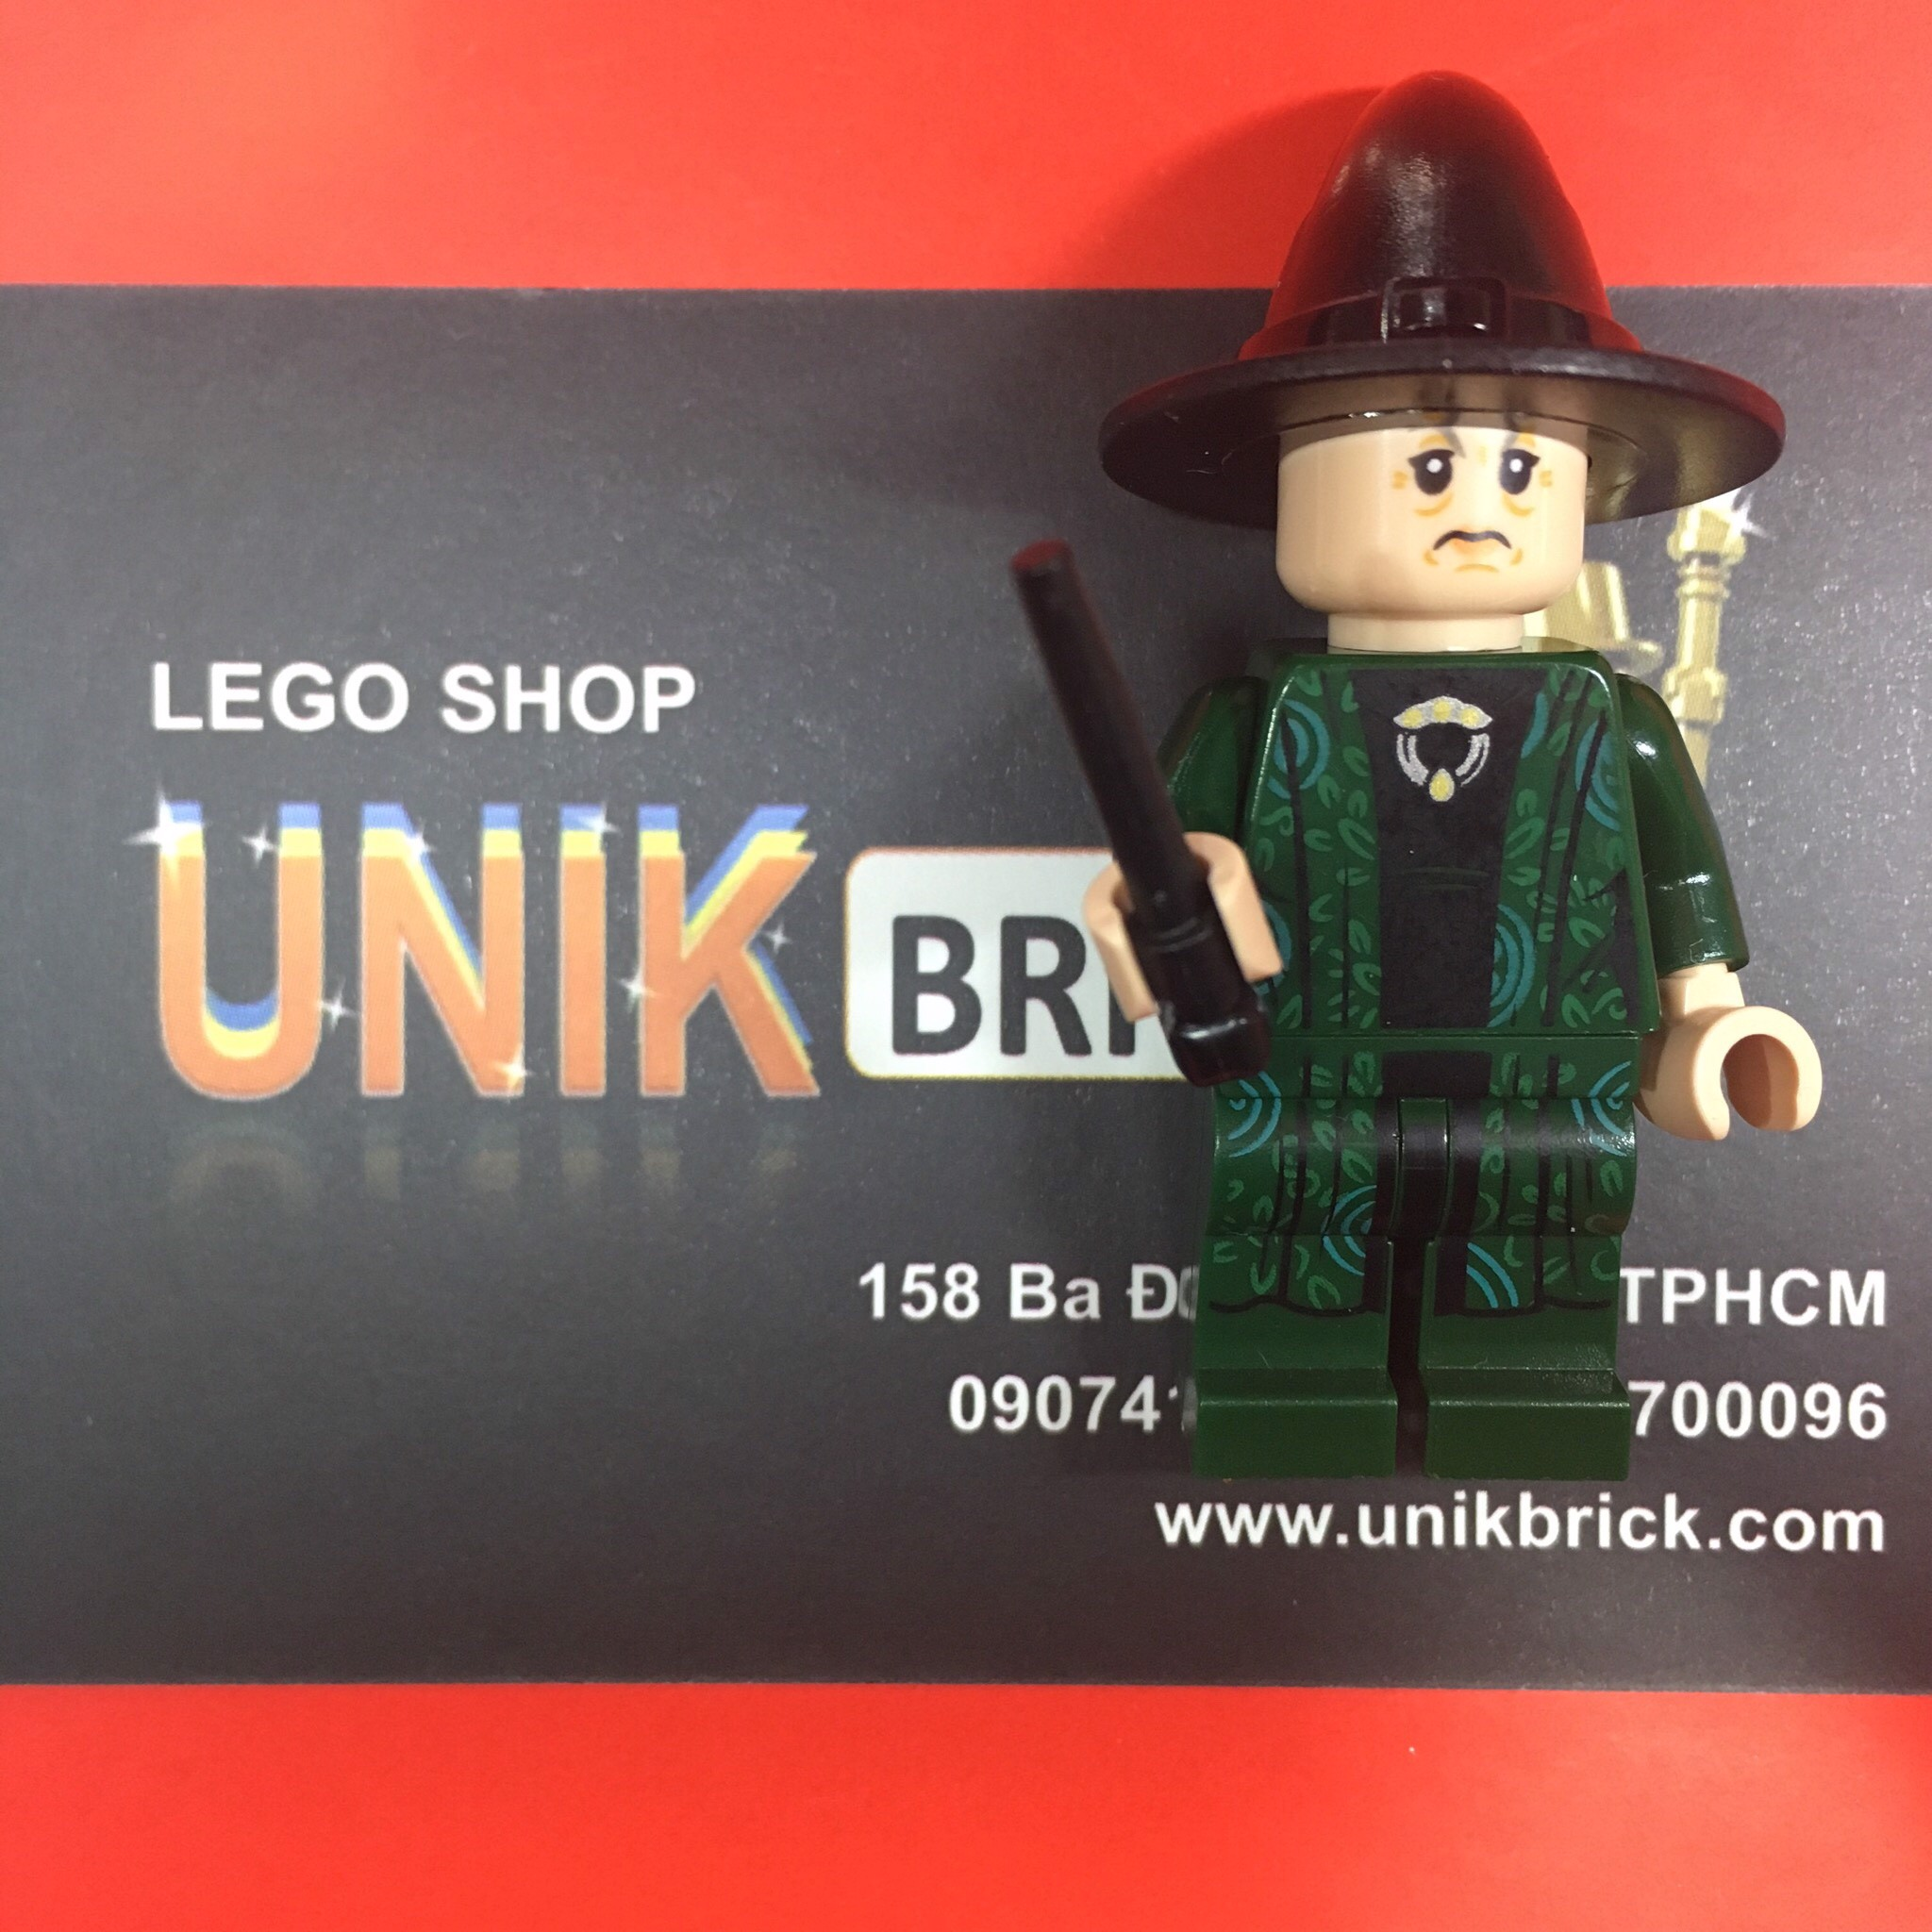 LEGO Professor Minerva McGonagall (Harry Potter)